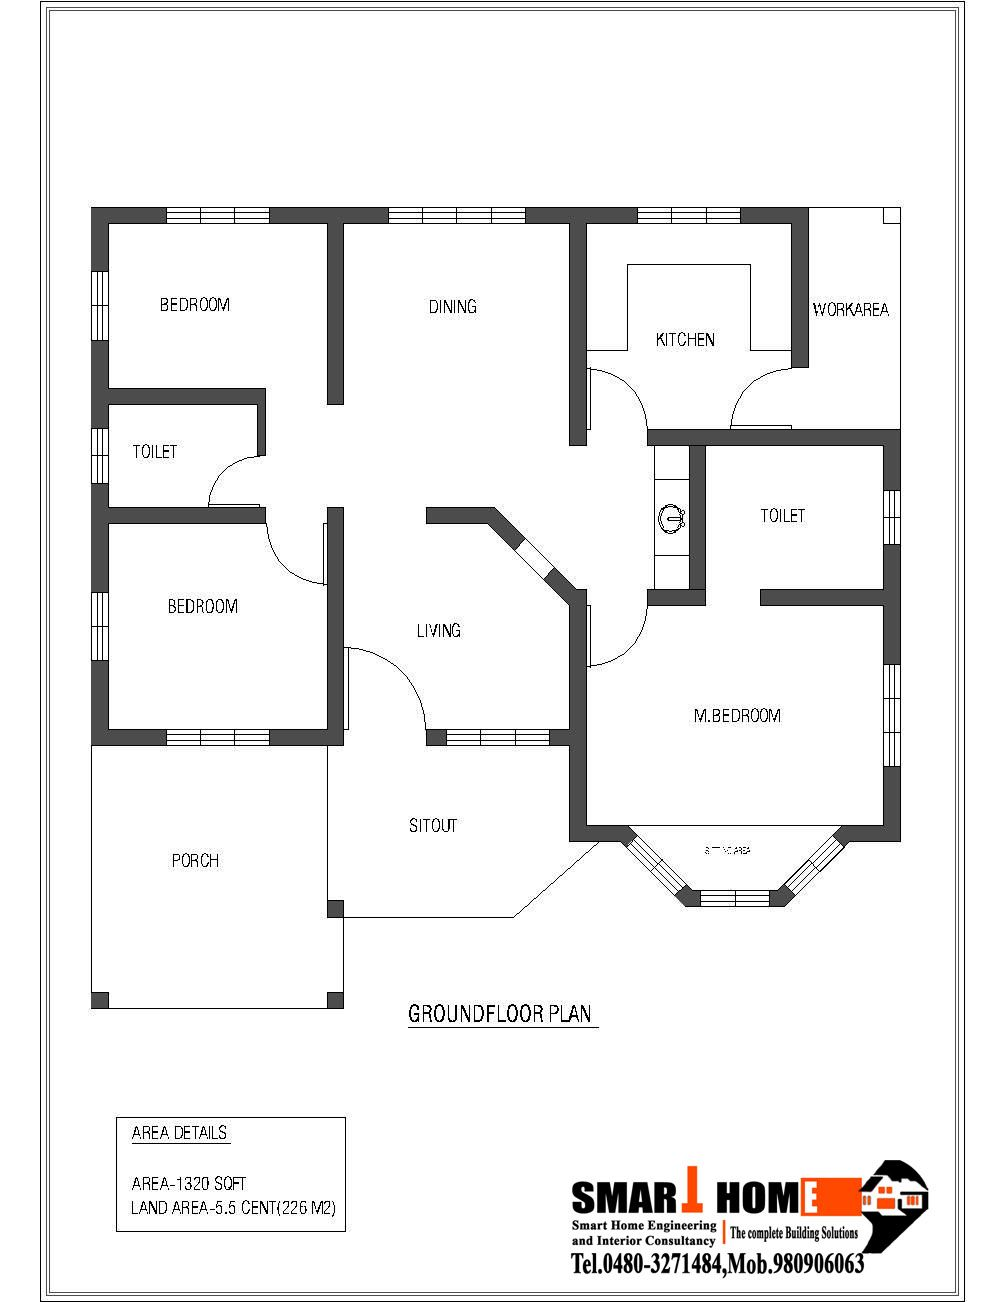 1320 sqft kerala style 3 bedroom house plan from smart Free home floor plan design